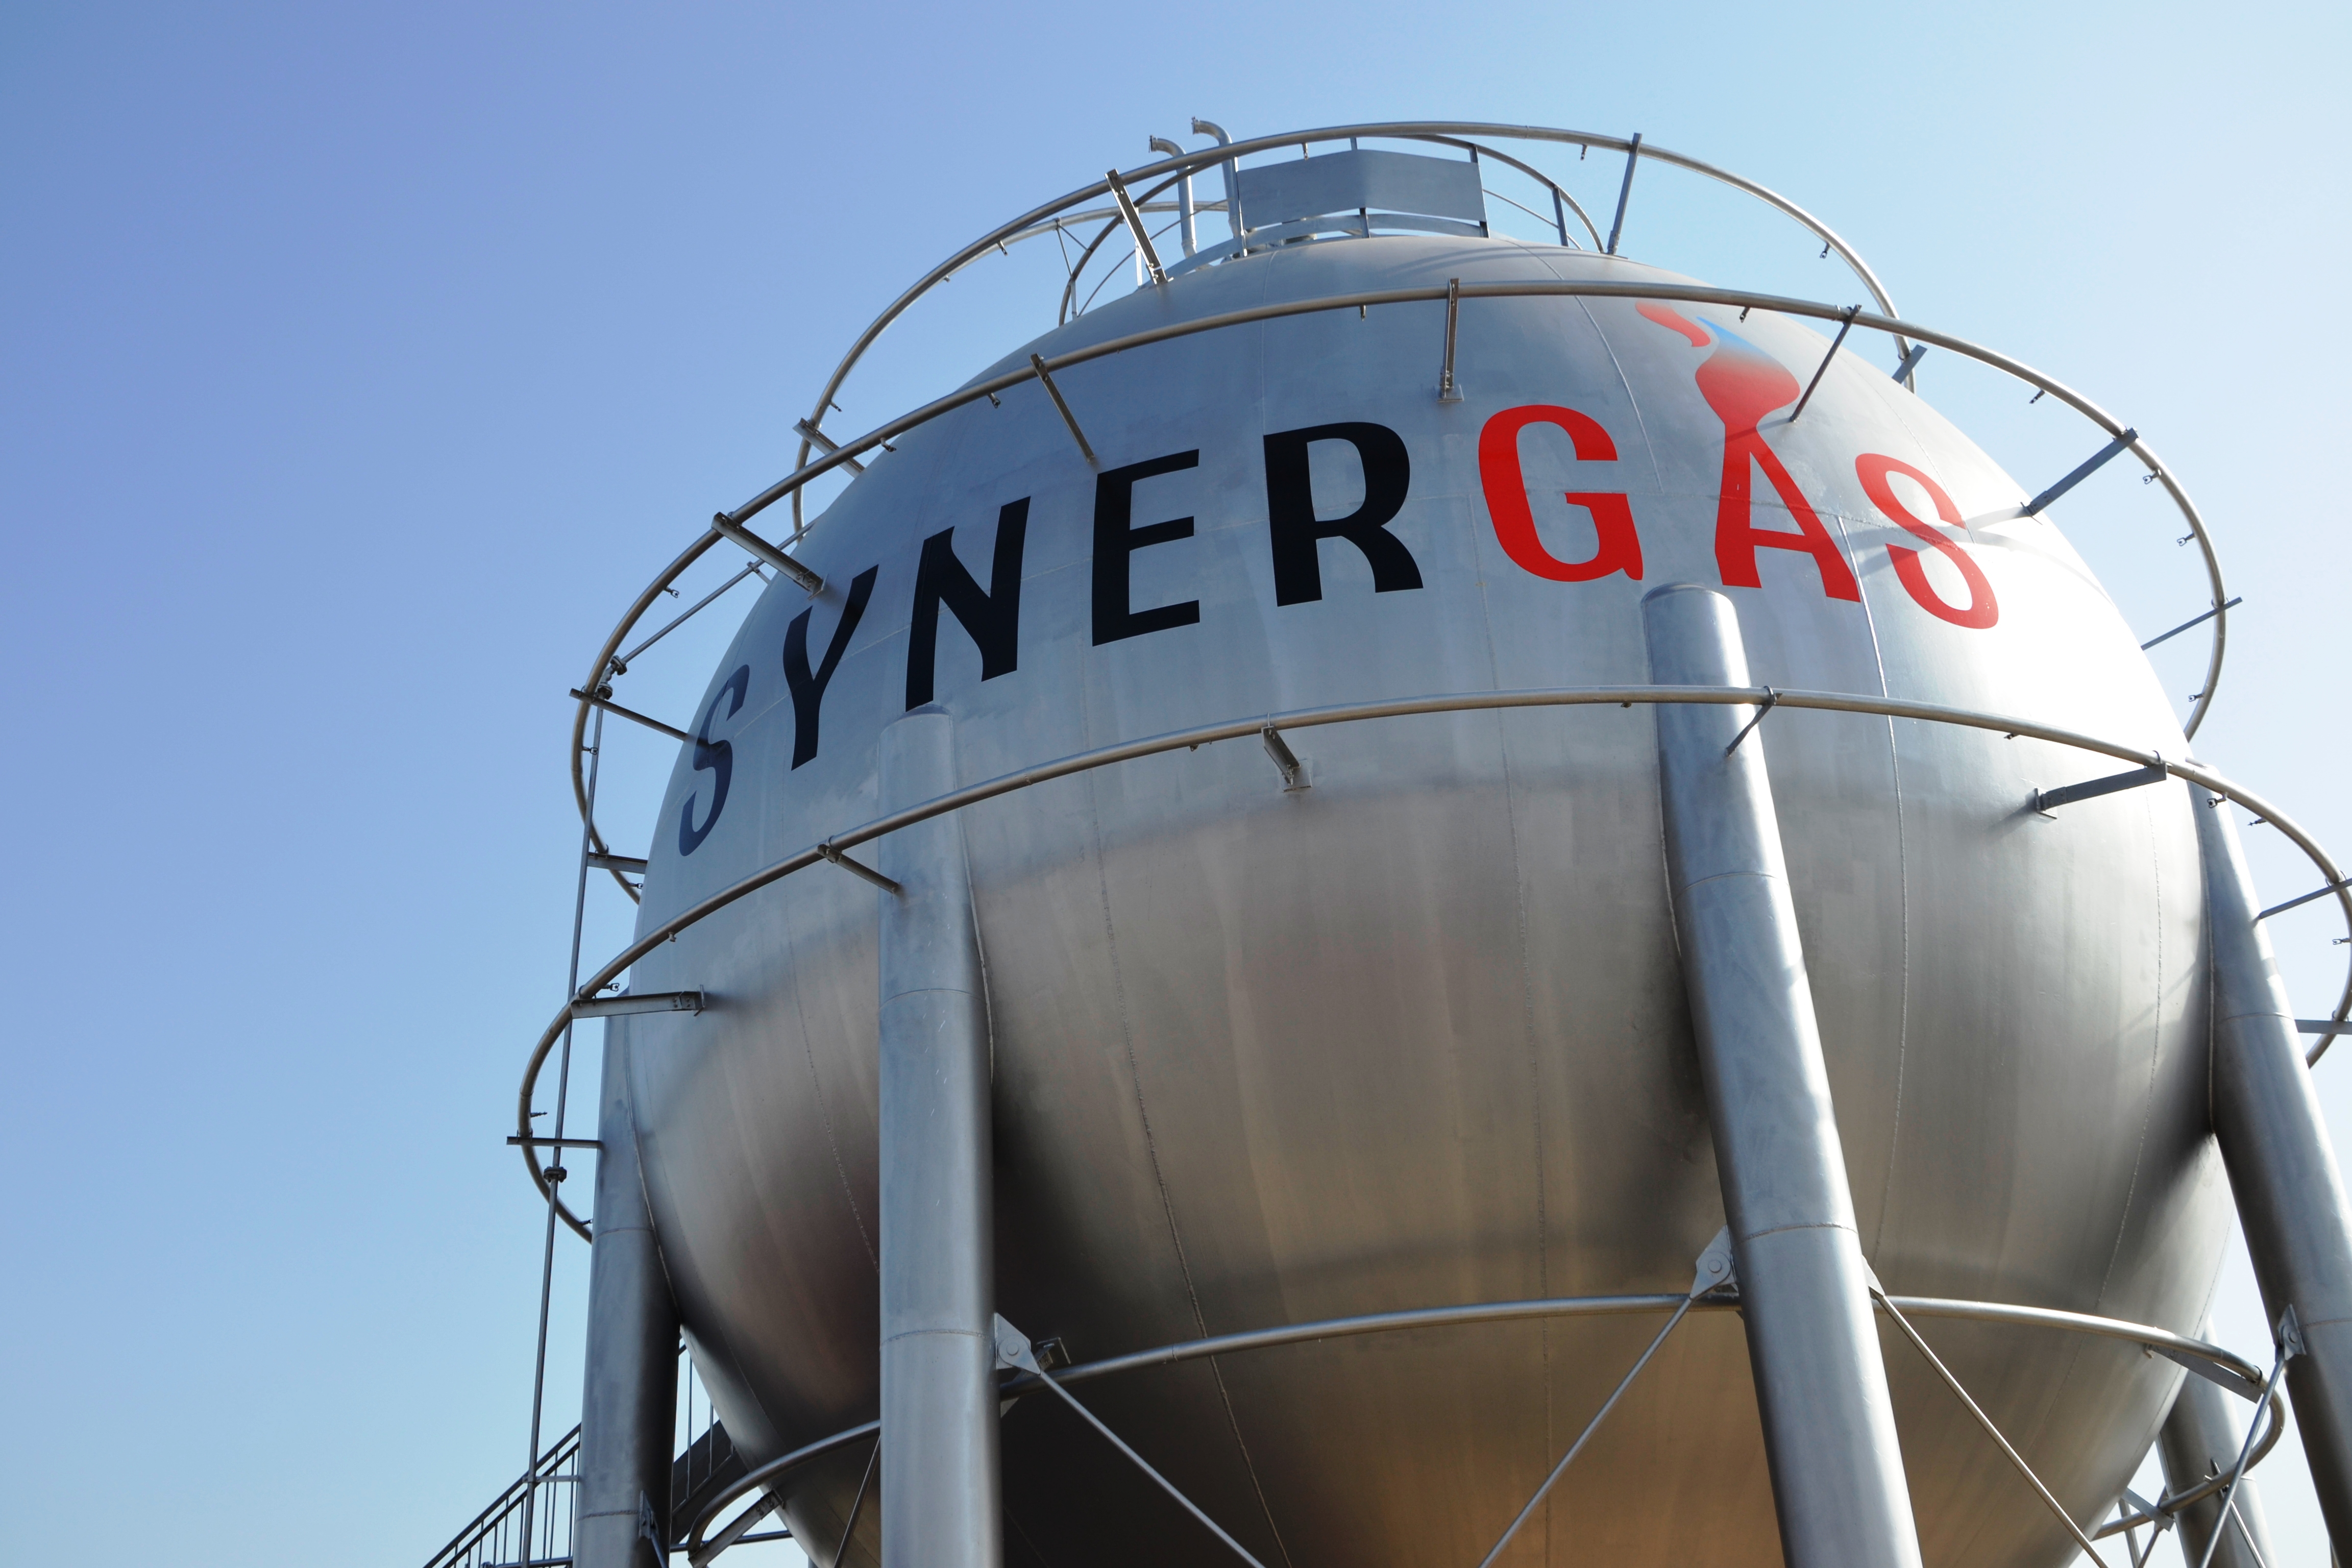 Synergas Presented